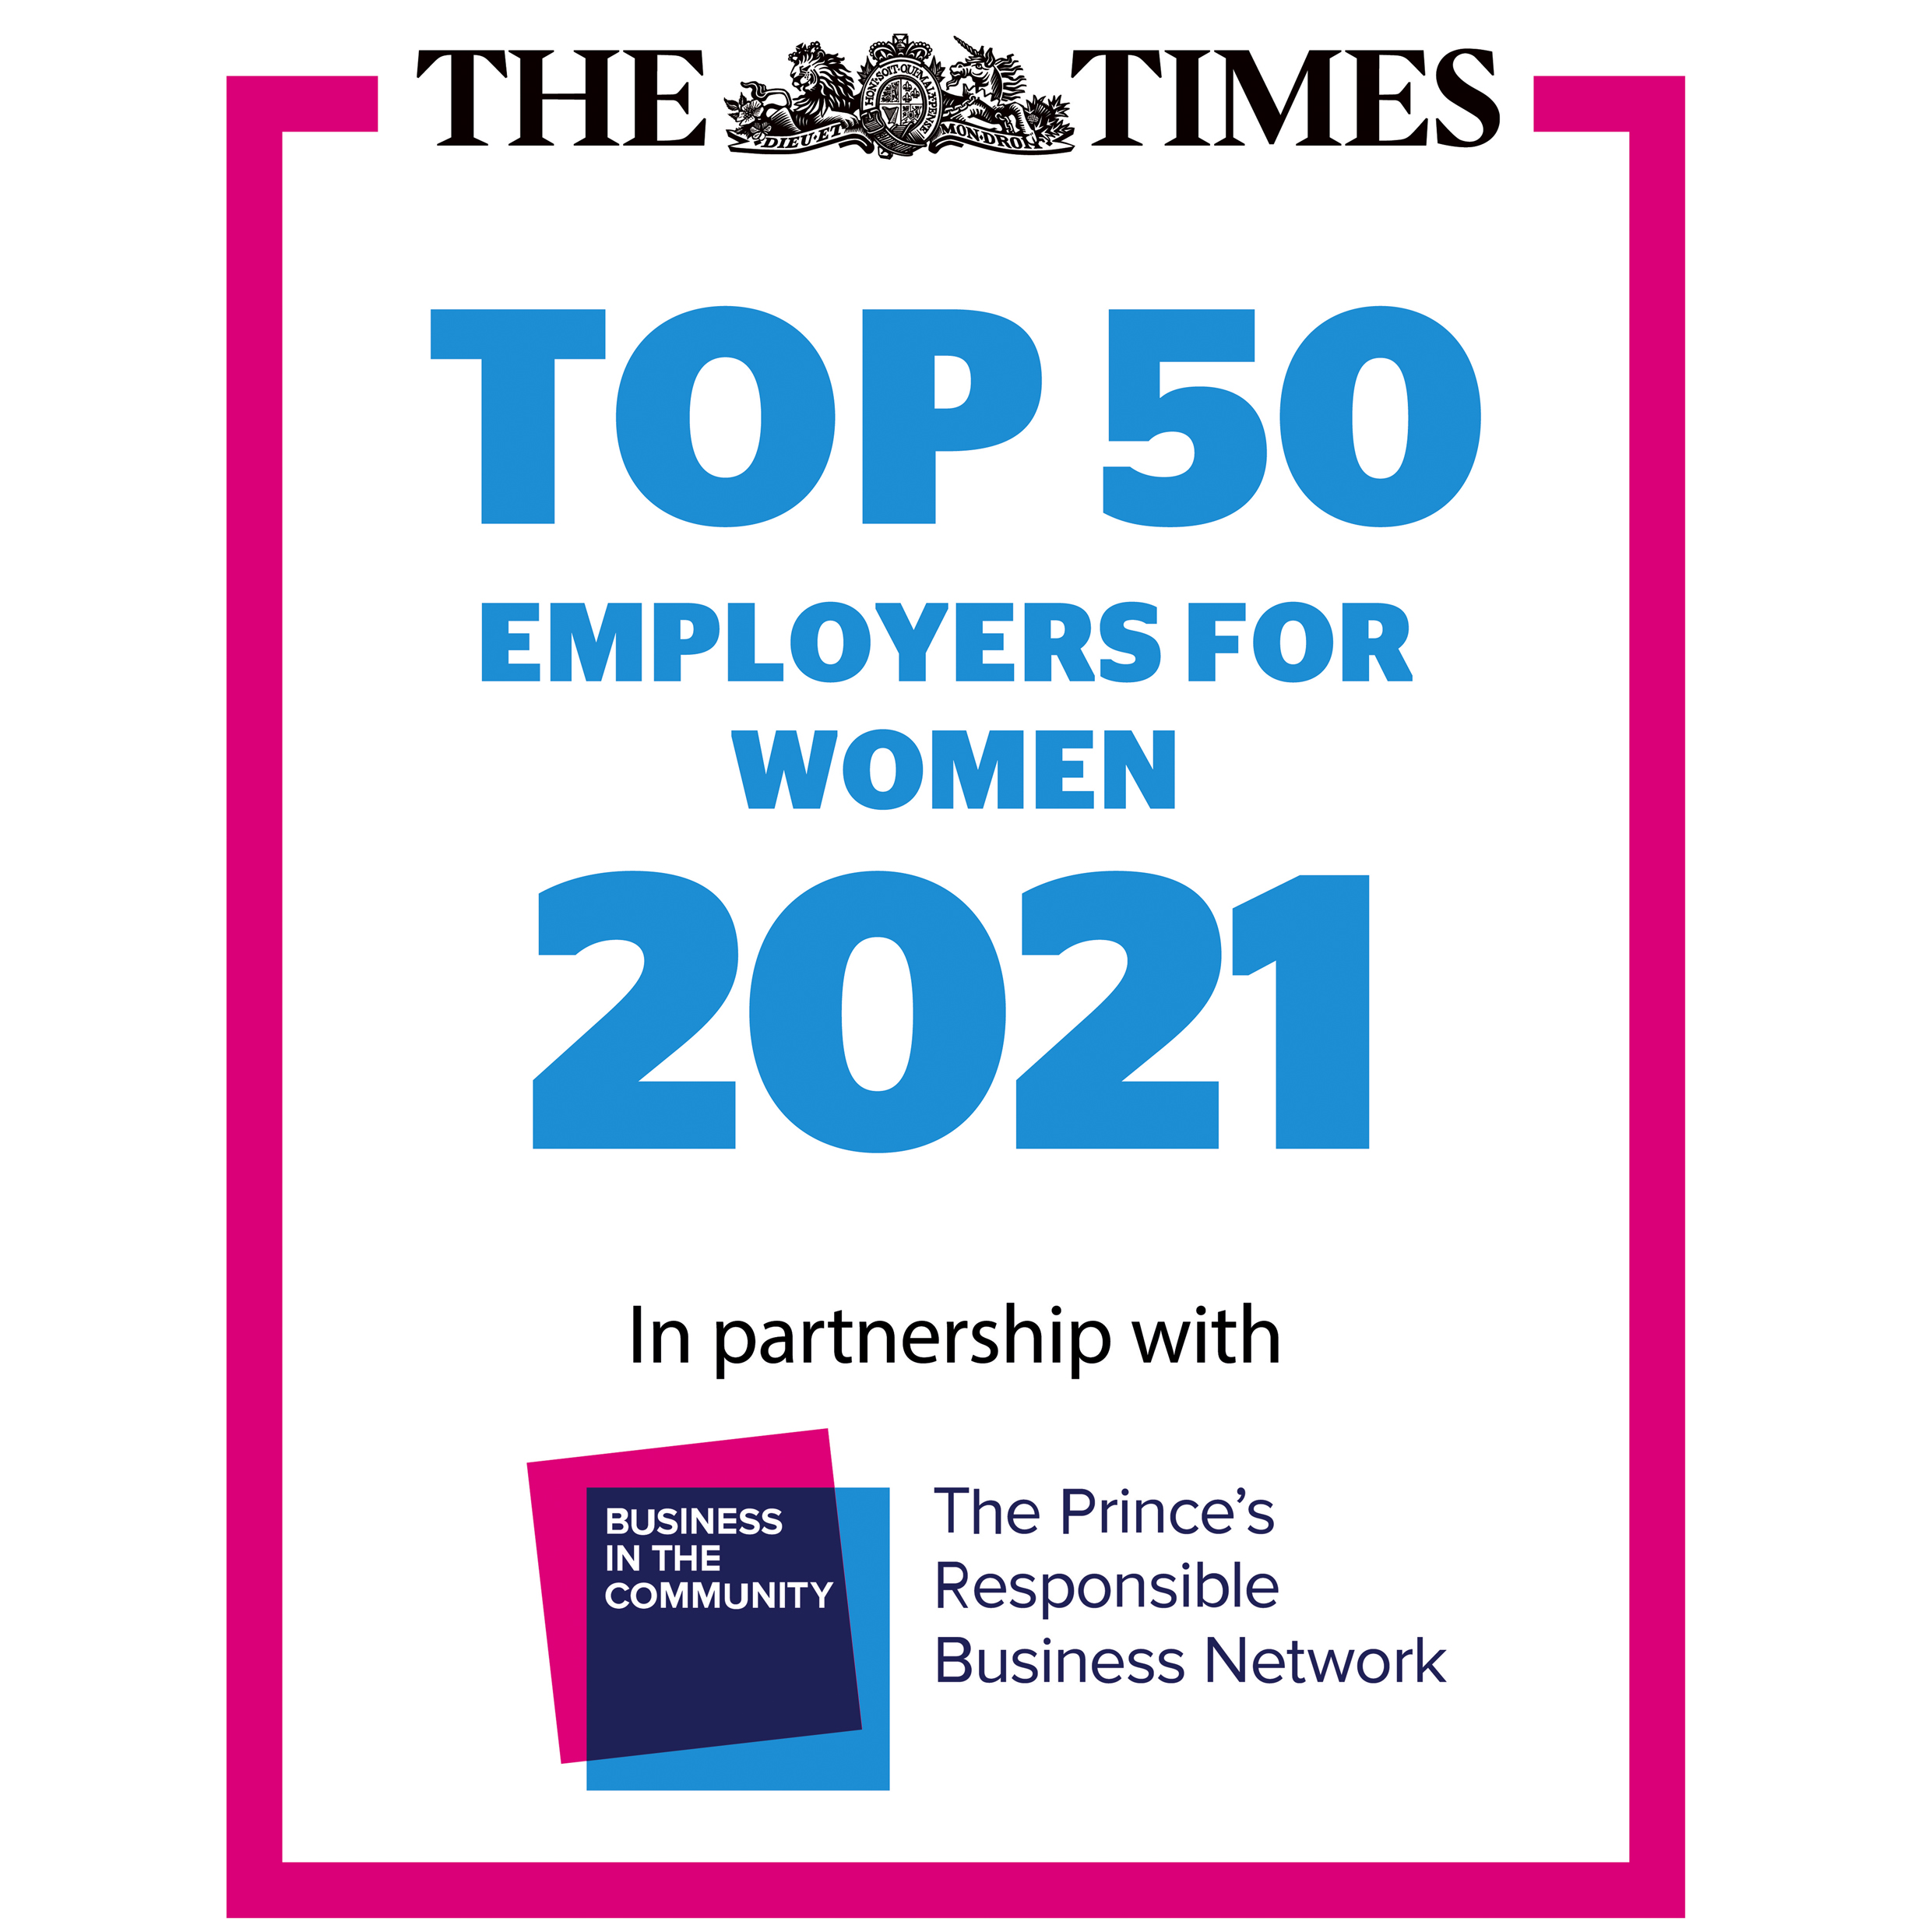 The Times Top 50 Employers For Women 2021